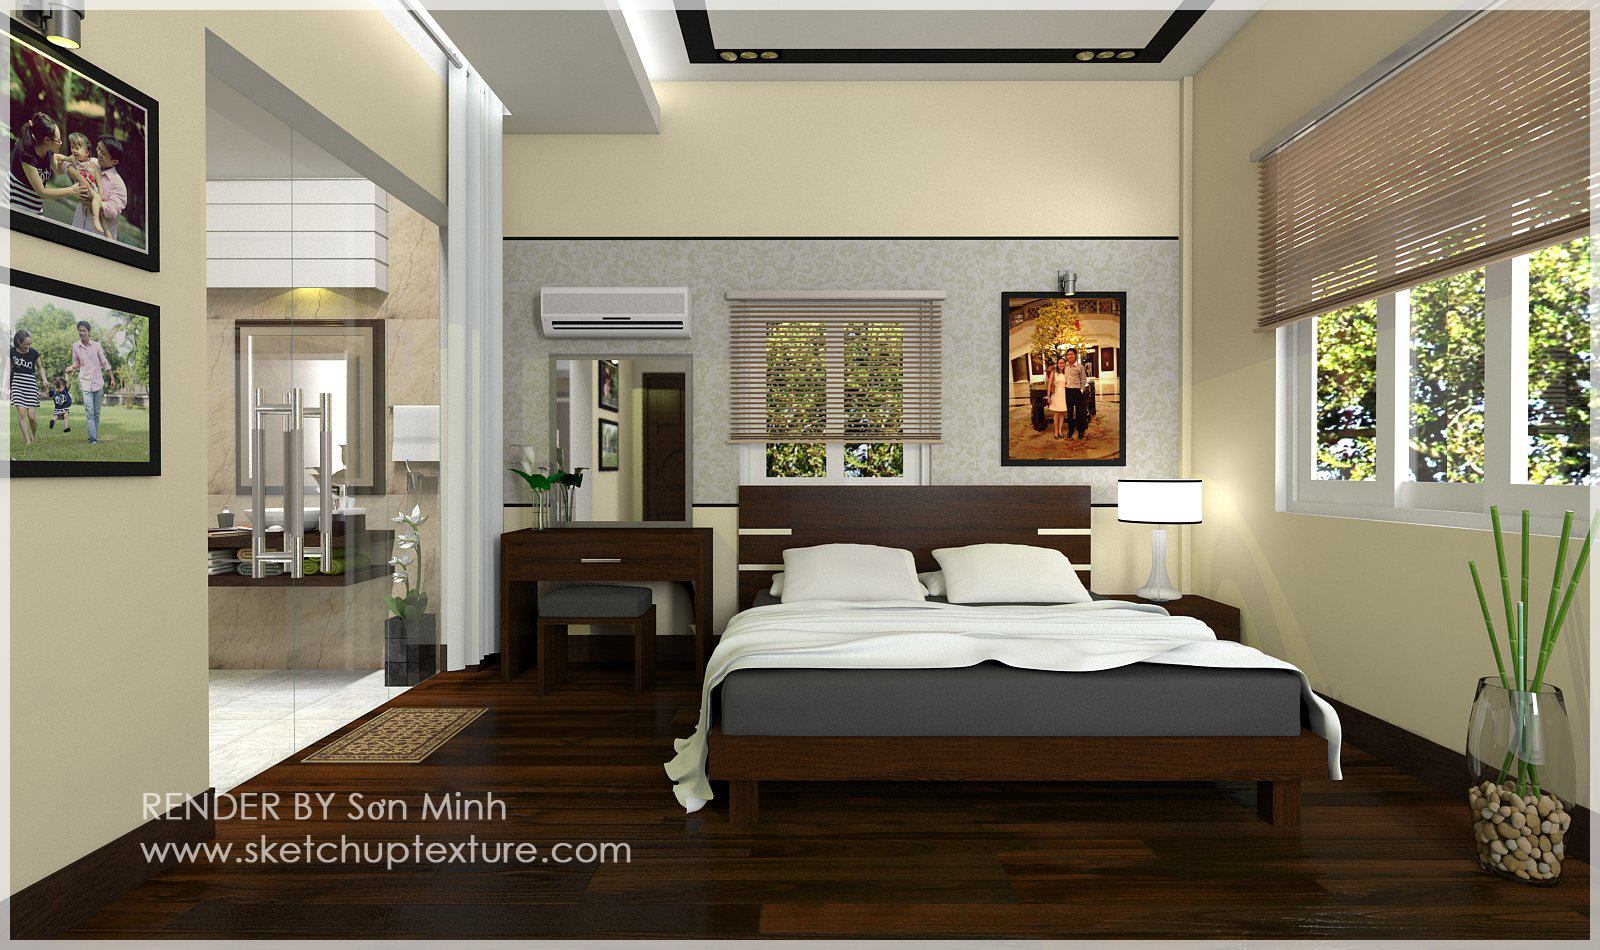 sketchup model bedroom 2 vray render a SKETCHUP TEXTURE